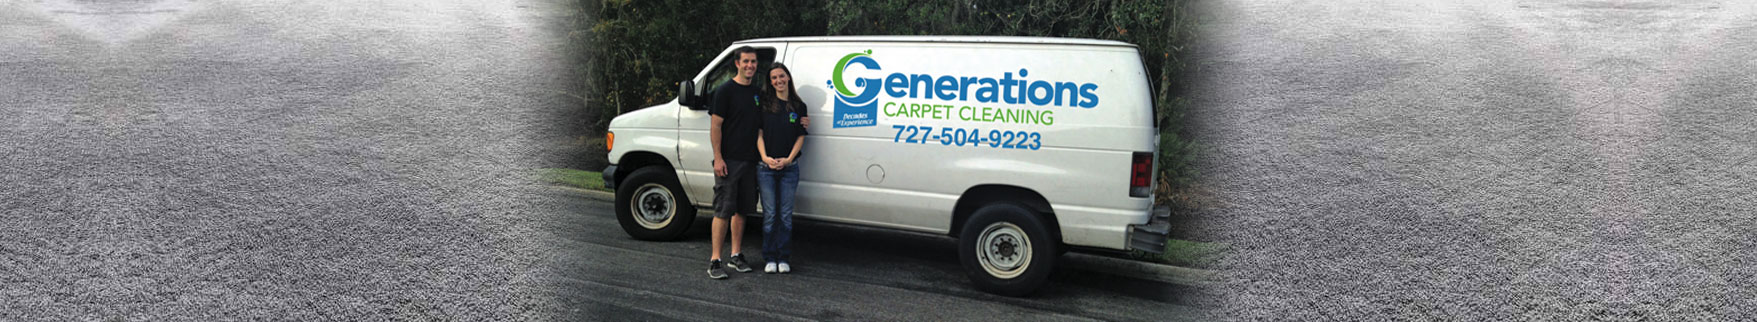 Generations Carpet Cleaning - Family Owned